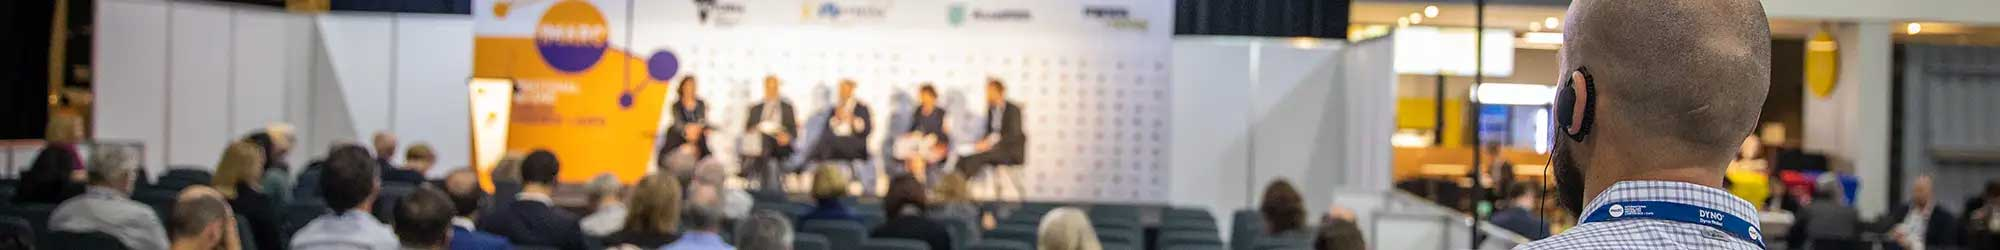 Collaboration Theatre - Expo | International Mining and Resources Conference + EXPO (IMARC) Online